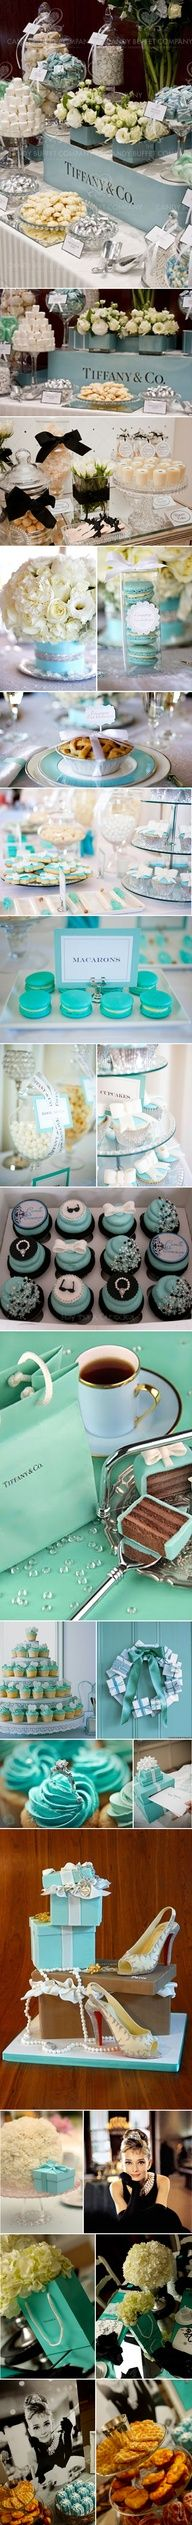 Tiffany blue wedding pallete robin egg teal pure love. OH my gosh!!!! Breakfast at Tiffany's wedding theme!!!! LOVE IT!